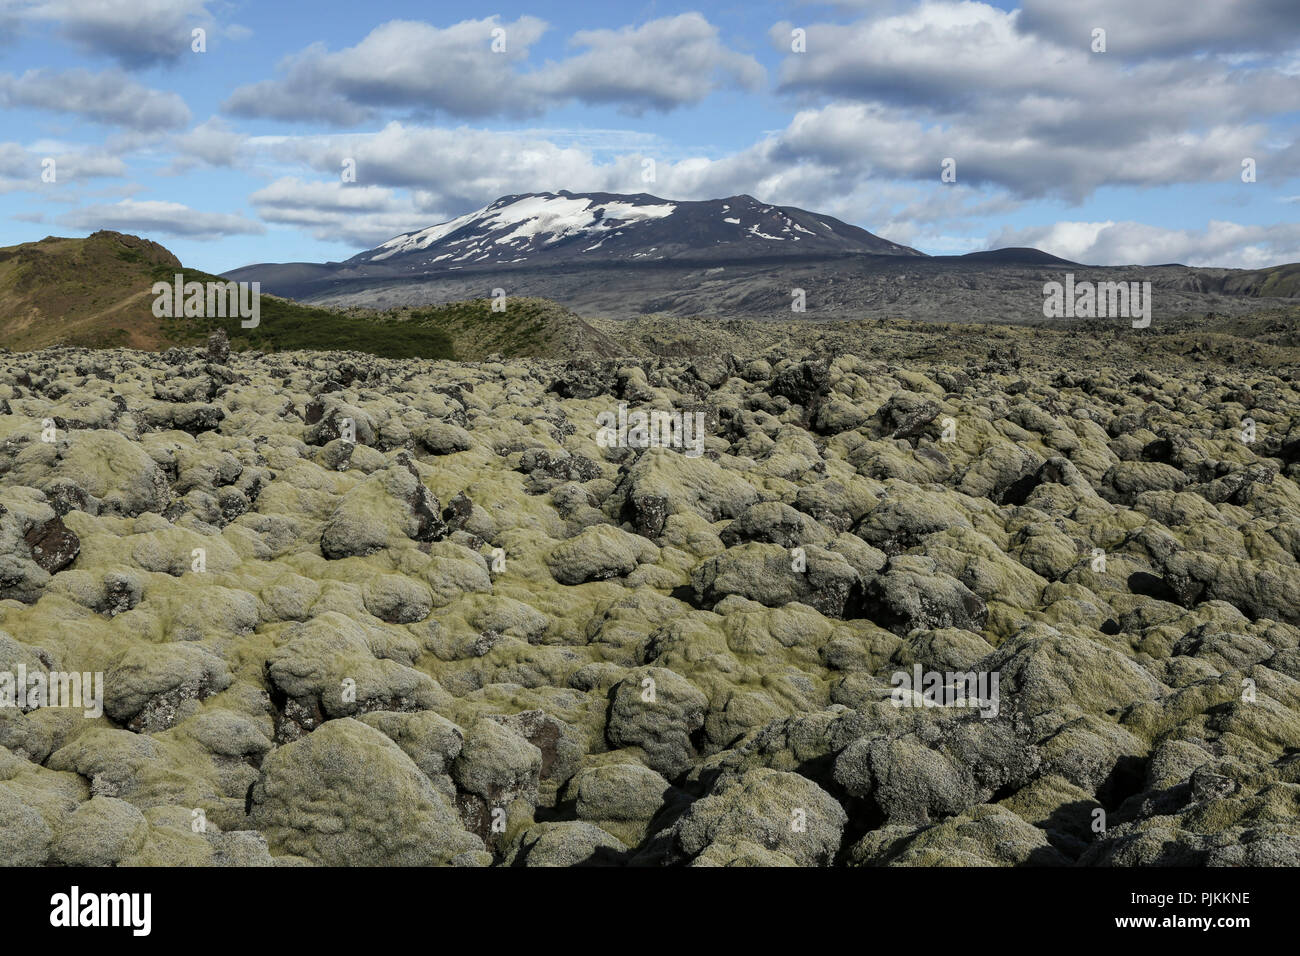 Iceland, volcano Hekla, south Iceland, old lava field, moss-covered - Stock Image